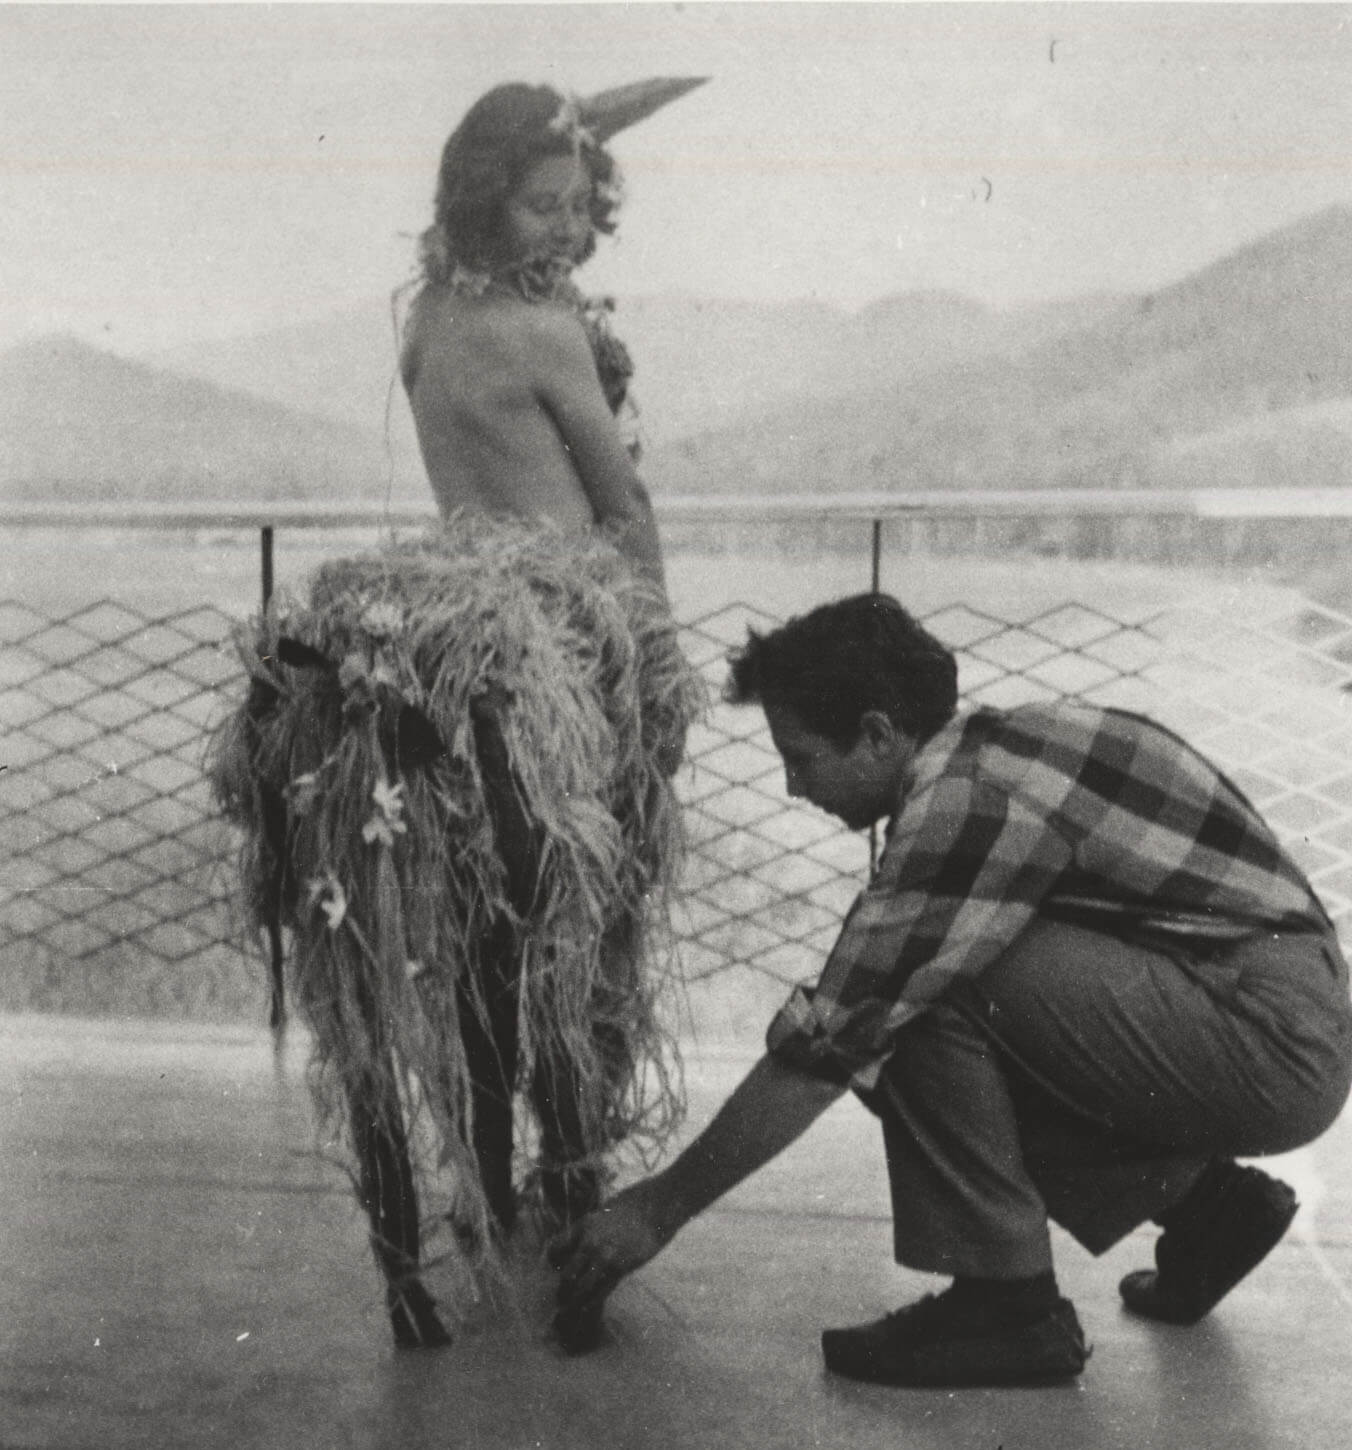 Black Mountain College students followed a variety of creative pursuits on campus and beyond. From left to right: Robert Rauschenberg makes the final adjustments on a centaur costume and Josef Albers guides a student during drawing class.